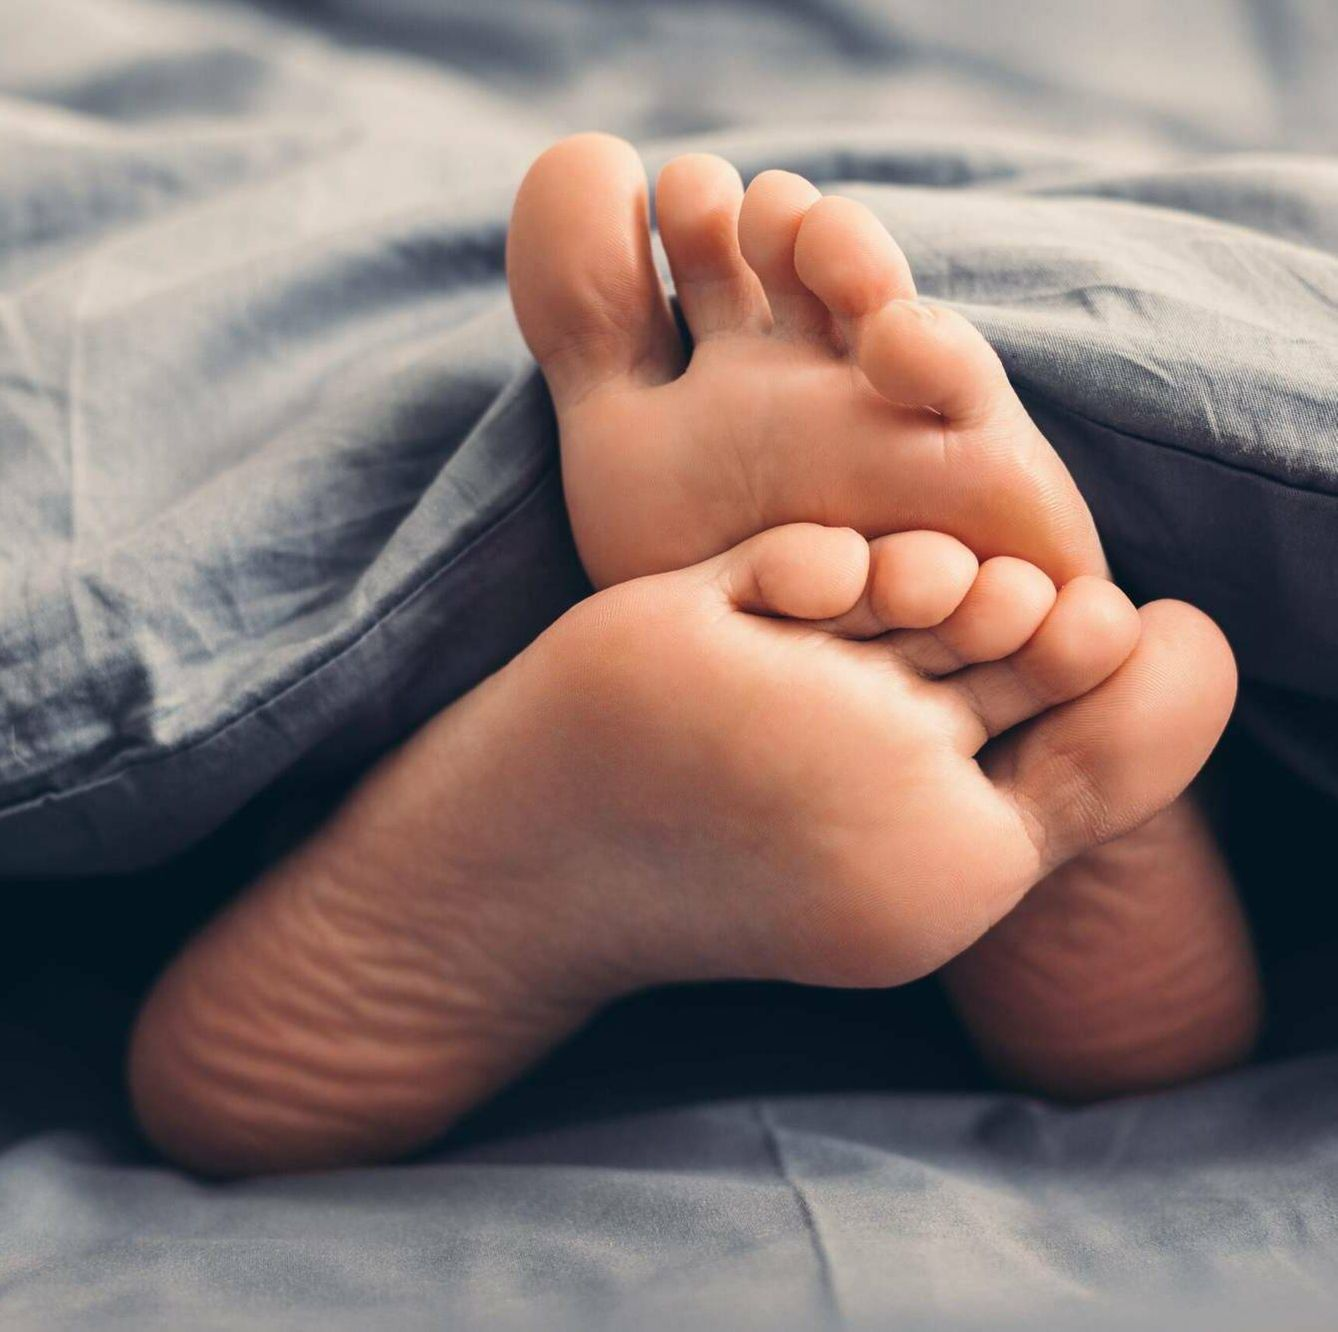 Photo of bare feet under a gray blanket in bed, mindful masturbation, self care